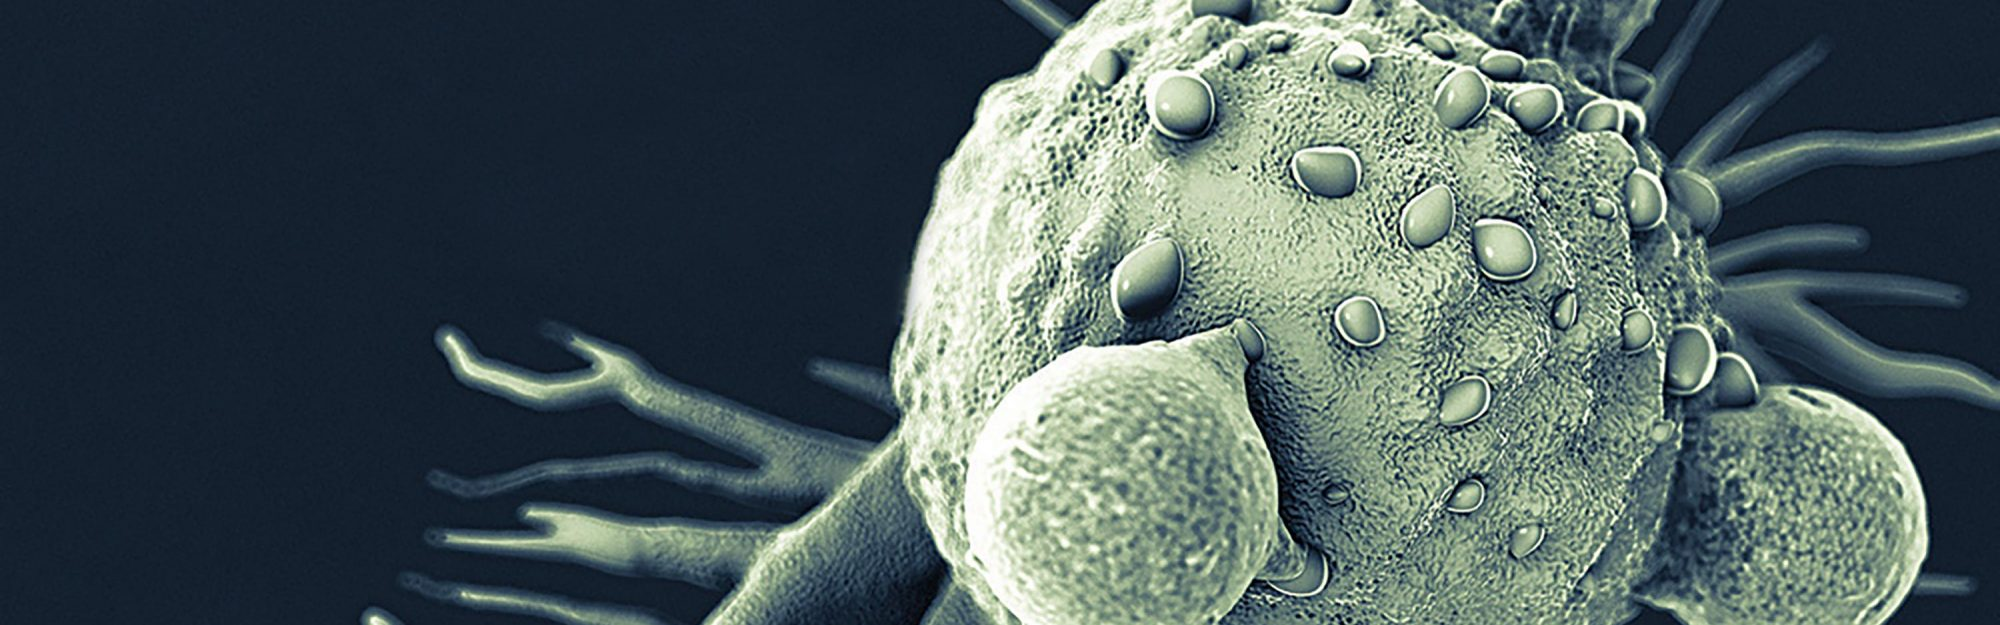 Image of Car-T cancer cell